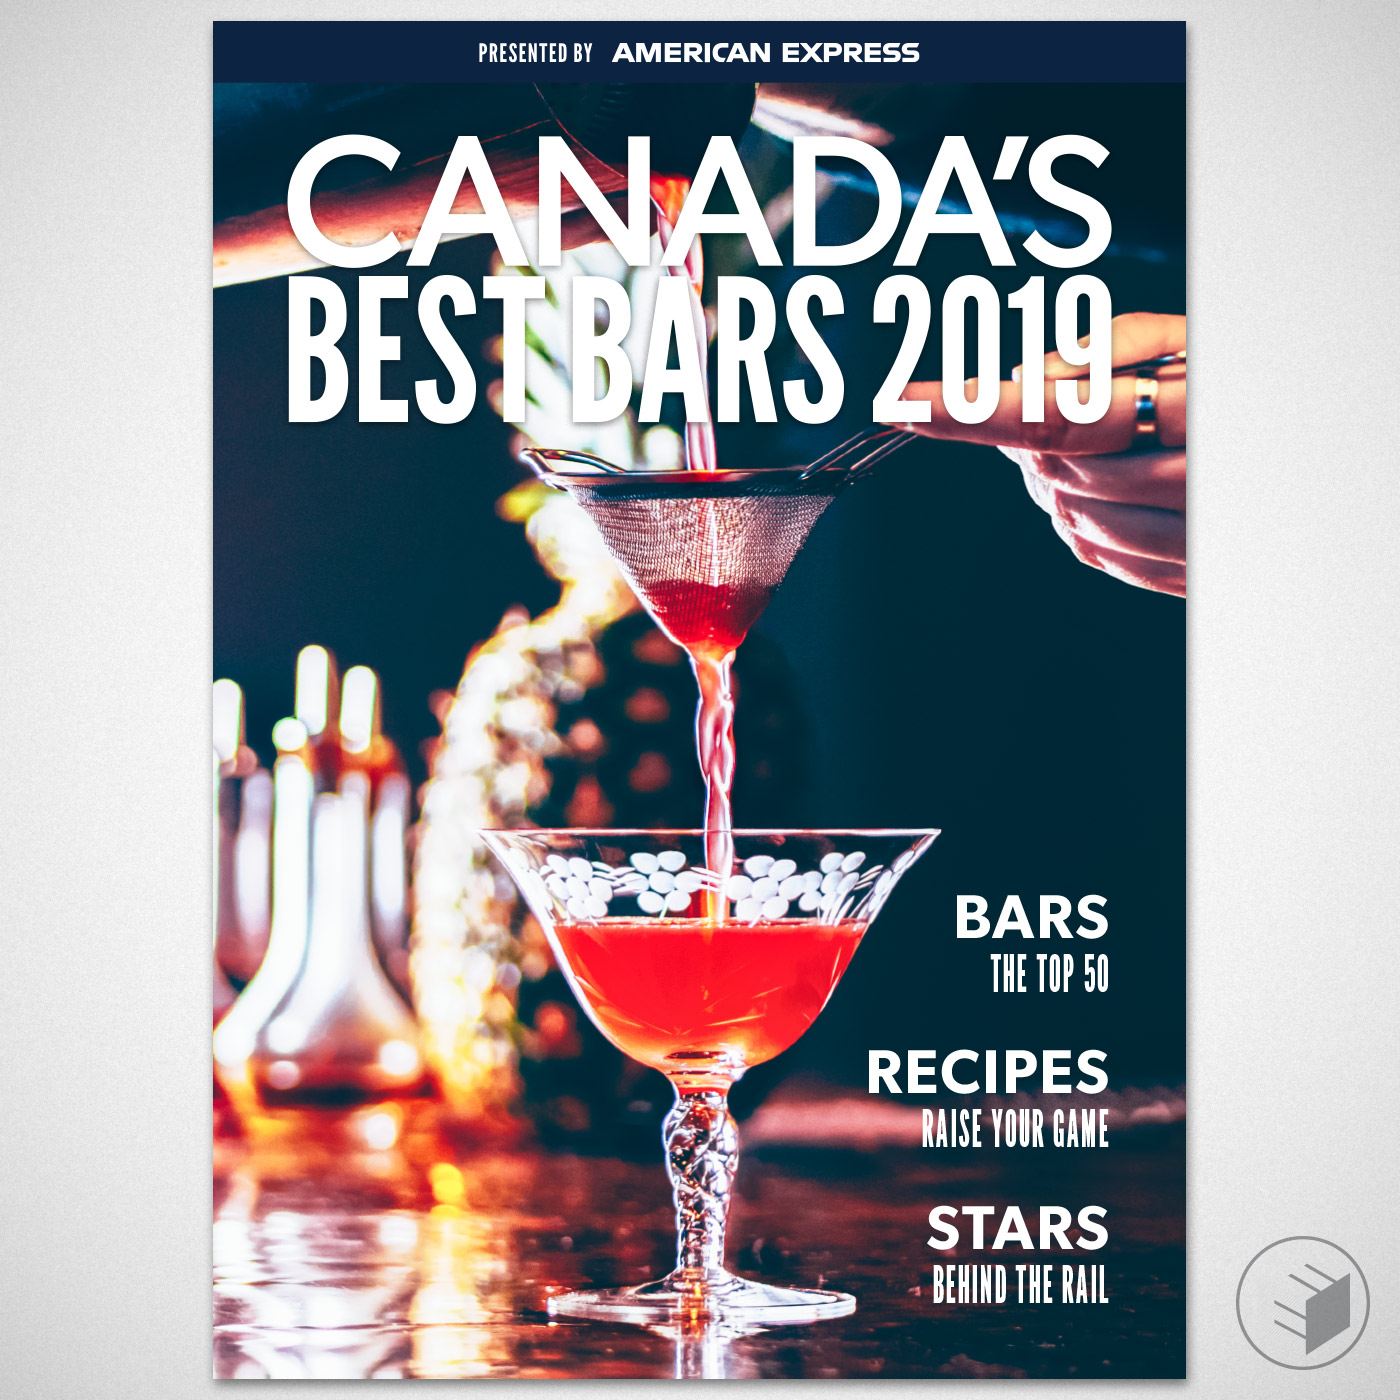 CANADA'S BEST BARS 2019 COVER